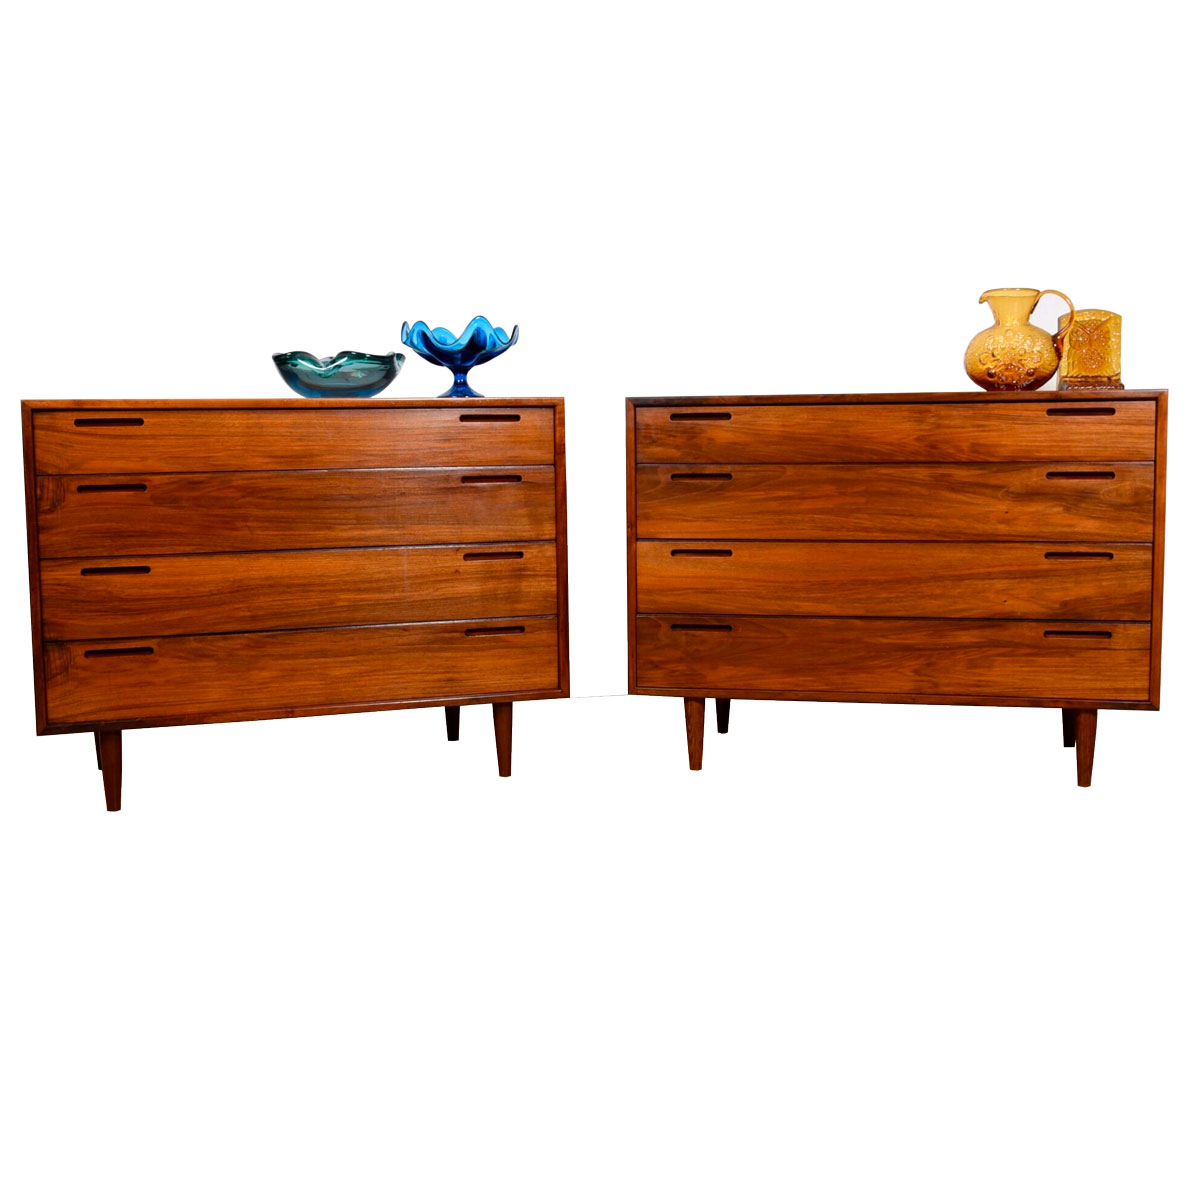 Pair of Old-Growth Walnut 4-Drawer Danish Chests